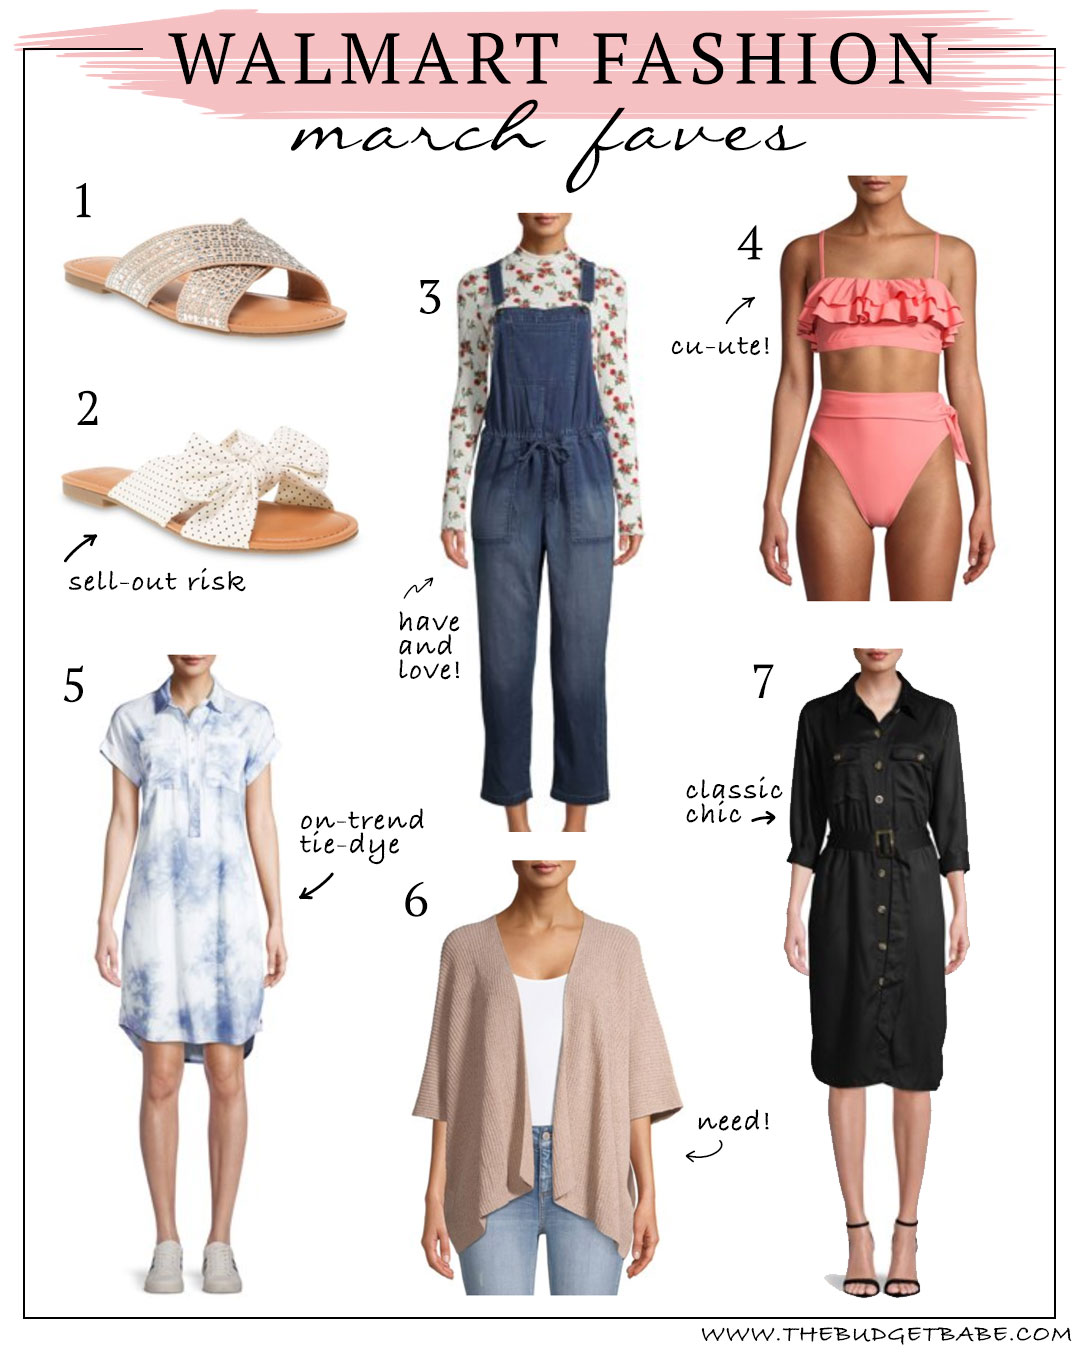 Wow need those overalls! So cute for $29! And the bow flats - adorable